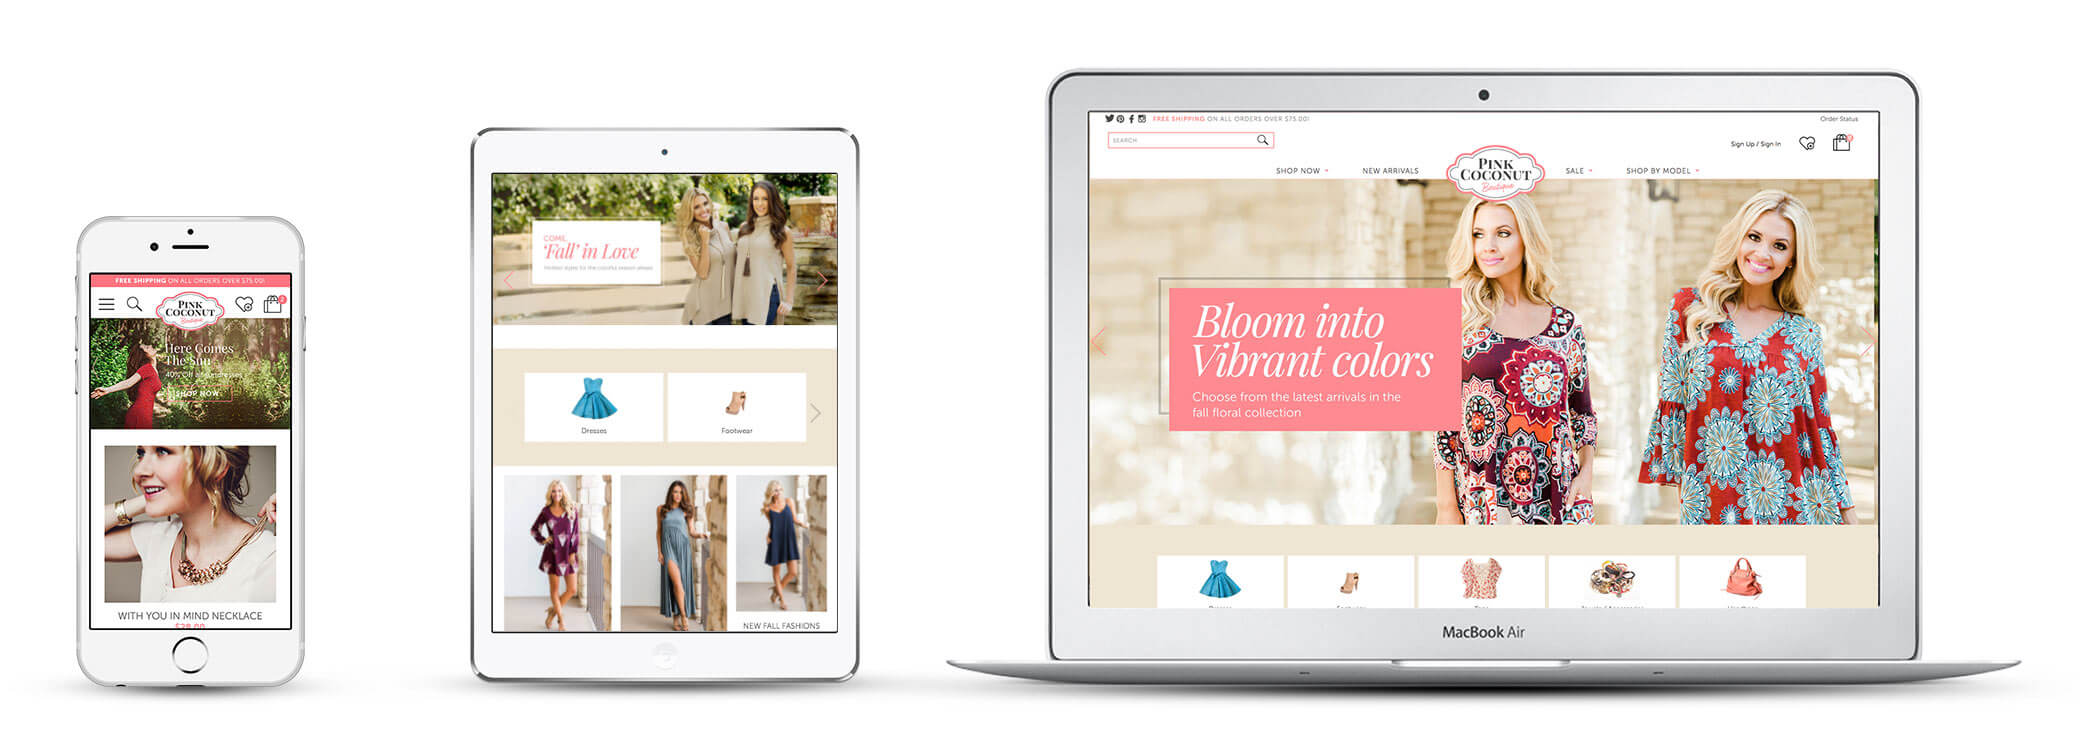 Echidna Pink Coconut Boutique Website Design Across Devices